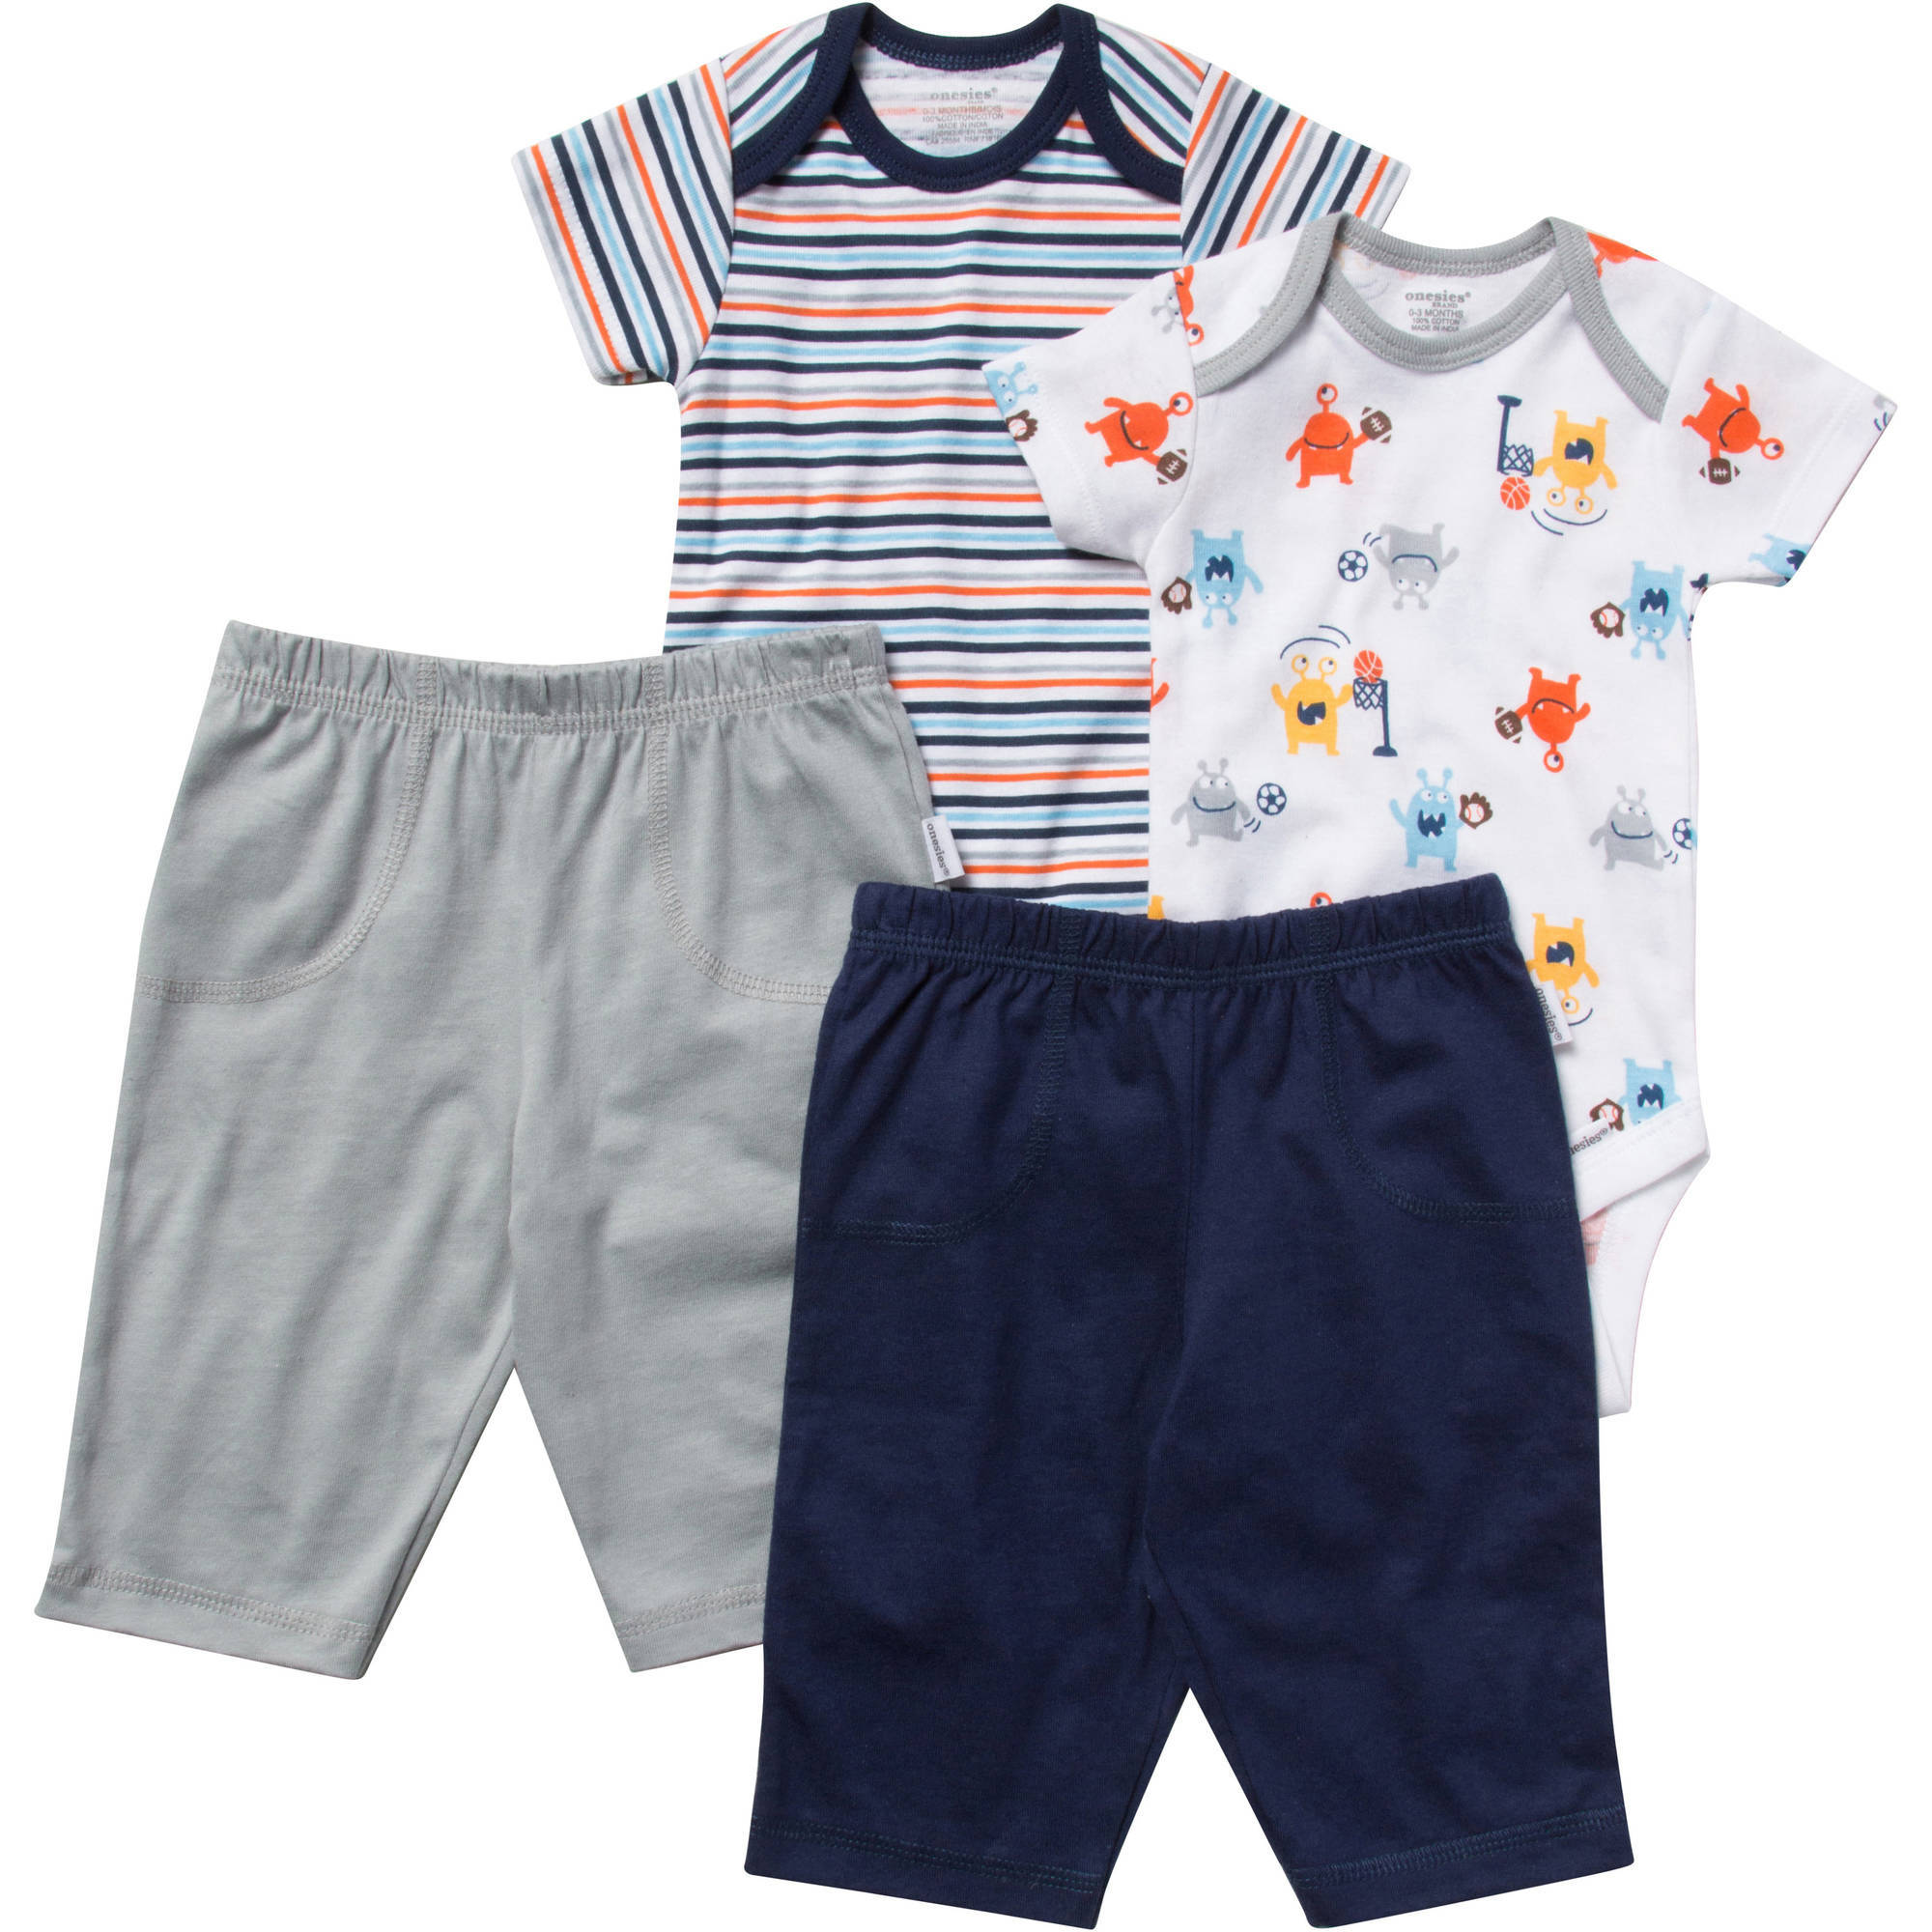 Onesies Brand Newborn Baby Boy Layette Set, 4-Piece